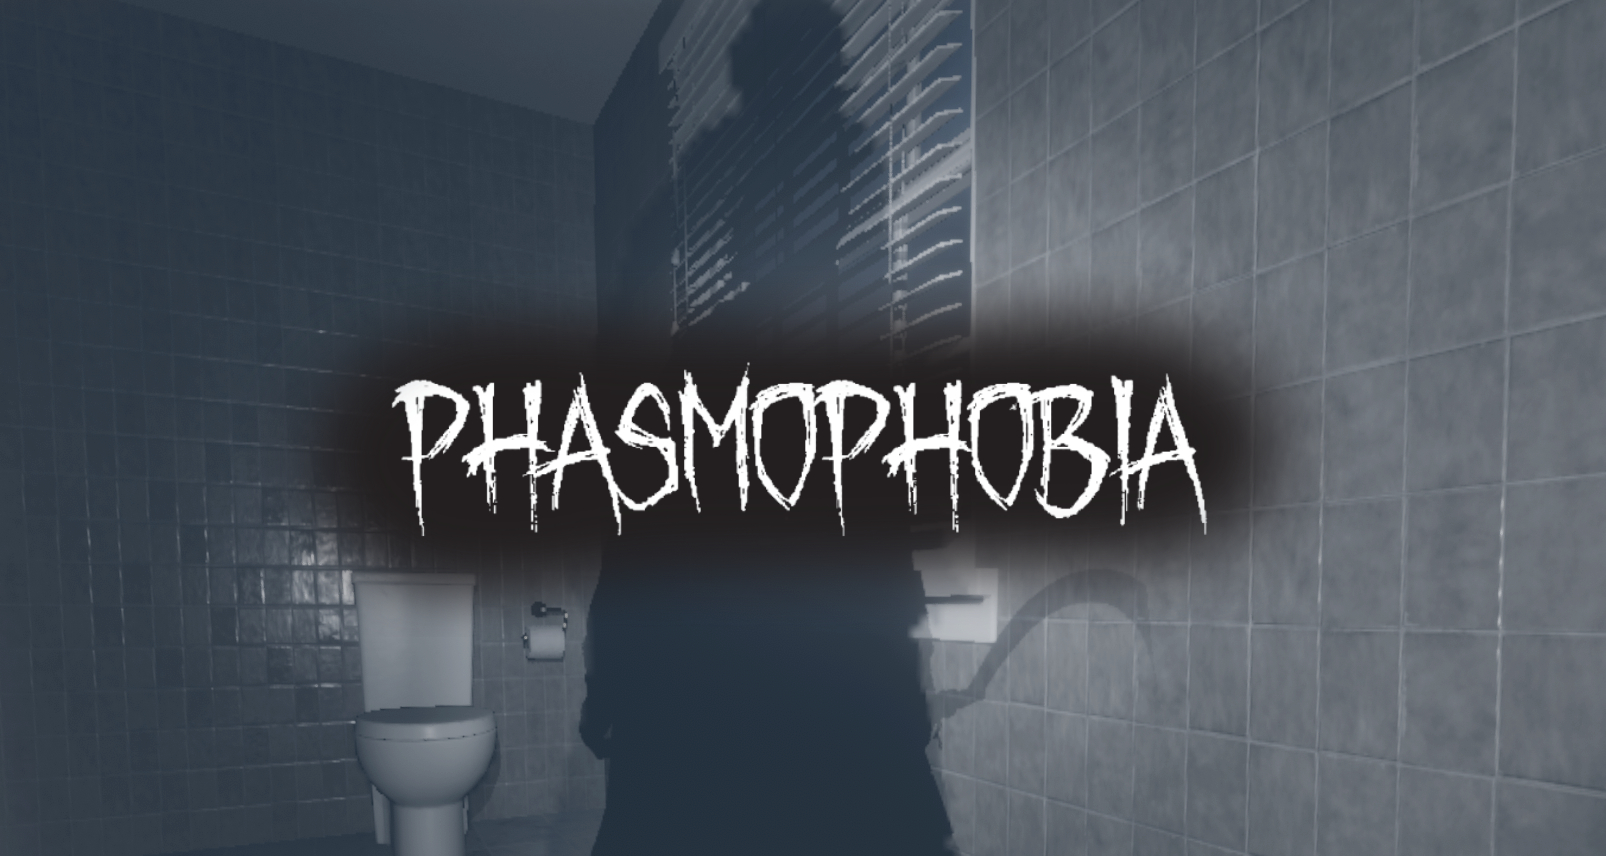 Phasmophobia - Phrases for Interacting with Ghosts | Questions asked when exploring locations